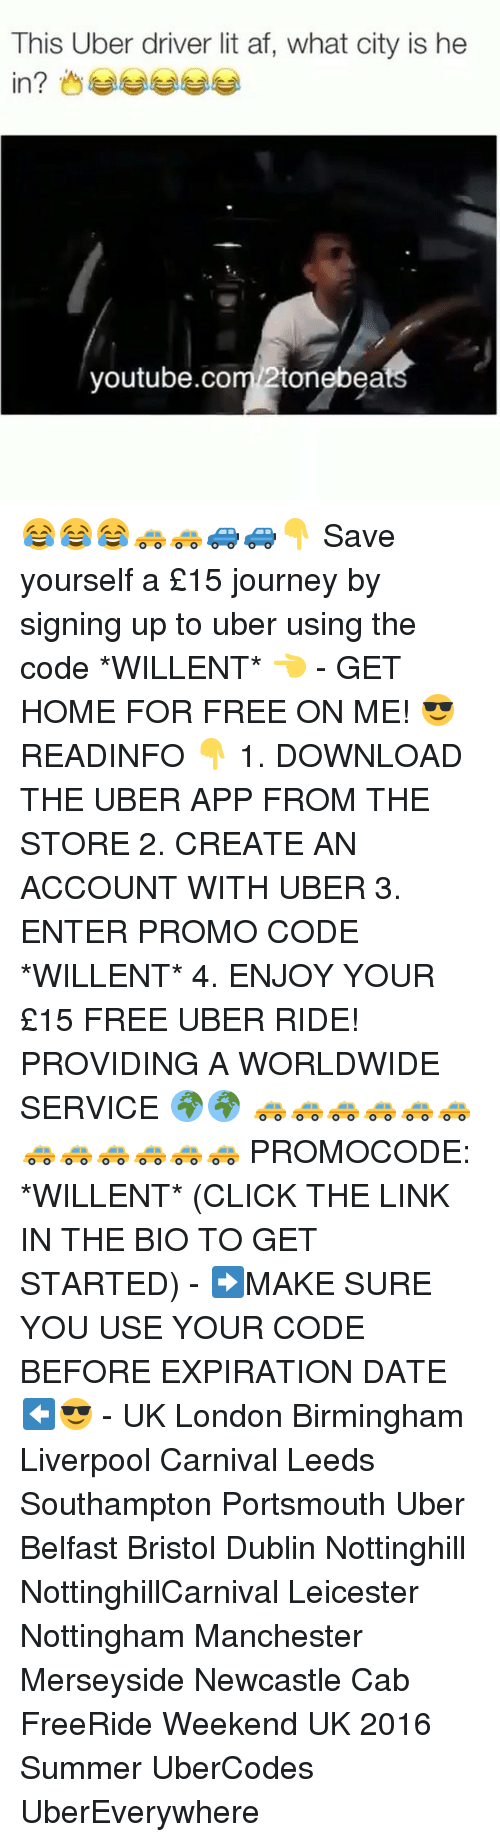 provident: This Uber driver lit af, what city is he  in?  youtube.com 2tonebea 😂😂😂🚕🚕🚙🚙👇 Save yourself a £15 journey by signing up to uber using the code *WILLENT* 👈 - GET HOME FOR FREE ON ME! 😎 READINFO 👇 1. DOWNLOAD THE UBER APP FROM THE STORE 2. CREATE AN ACCOUNT WITH UBER 3. ENTER PROMO CODE *WILLENT* 4. ENJOY YOUR £15 FREE UBER RIDE! PROVIDING A WORLDWIDE SERVICE 🌍🌍 🚕🚕🚕🚕🚕🚕🚕🚕🚕🚕🚕🚕 PROMOCODE: *WILLENT* (CLICK THE LINK IN THE BIO TO GET STARTED) - ➡️MAKE SURE YOU USE YOUR CODE BEFORE EXPIRATION DATE ⬅️😎 - UK London Birmingham Liverpool Carnival Leeds Southampton Portsmouth Uber Belfast Bristol Dublin Nottinghill NottinghillCarnival Leicester Nottingham Manchester Merseyside Newcastle Cab FreeRide Weekend UK 2016 Summer UberCodes UberEverywhere